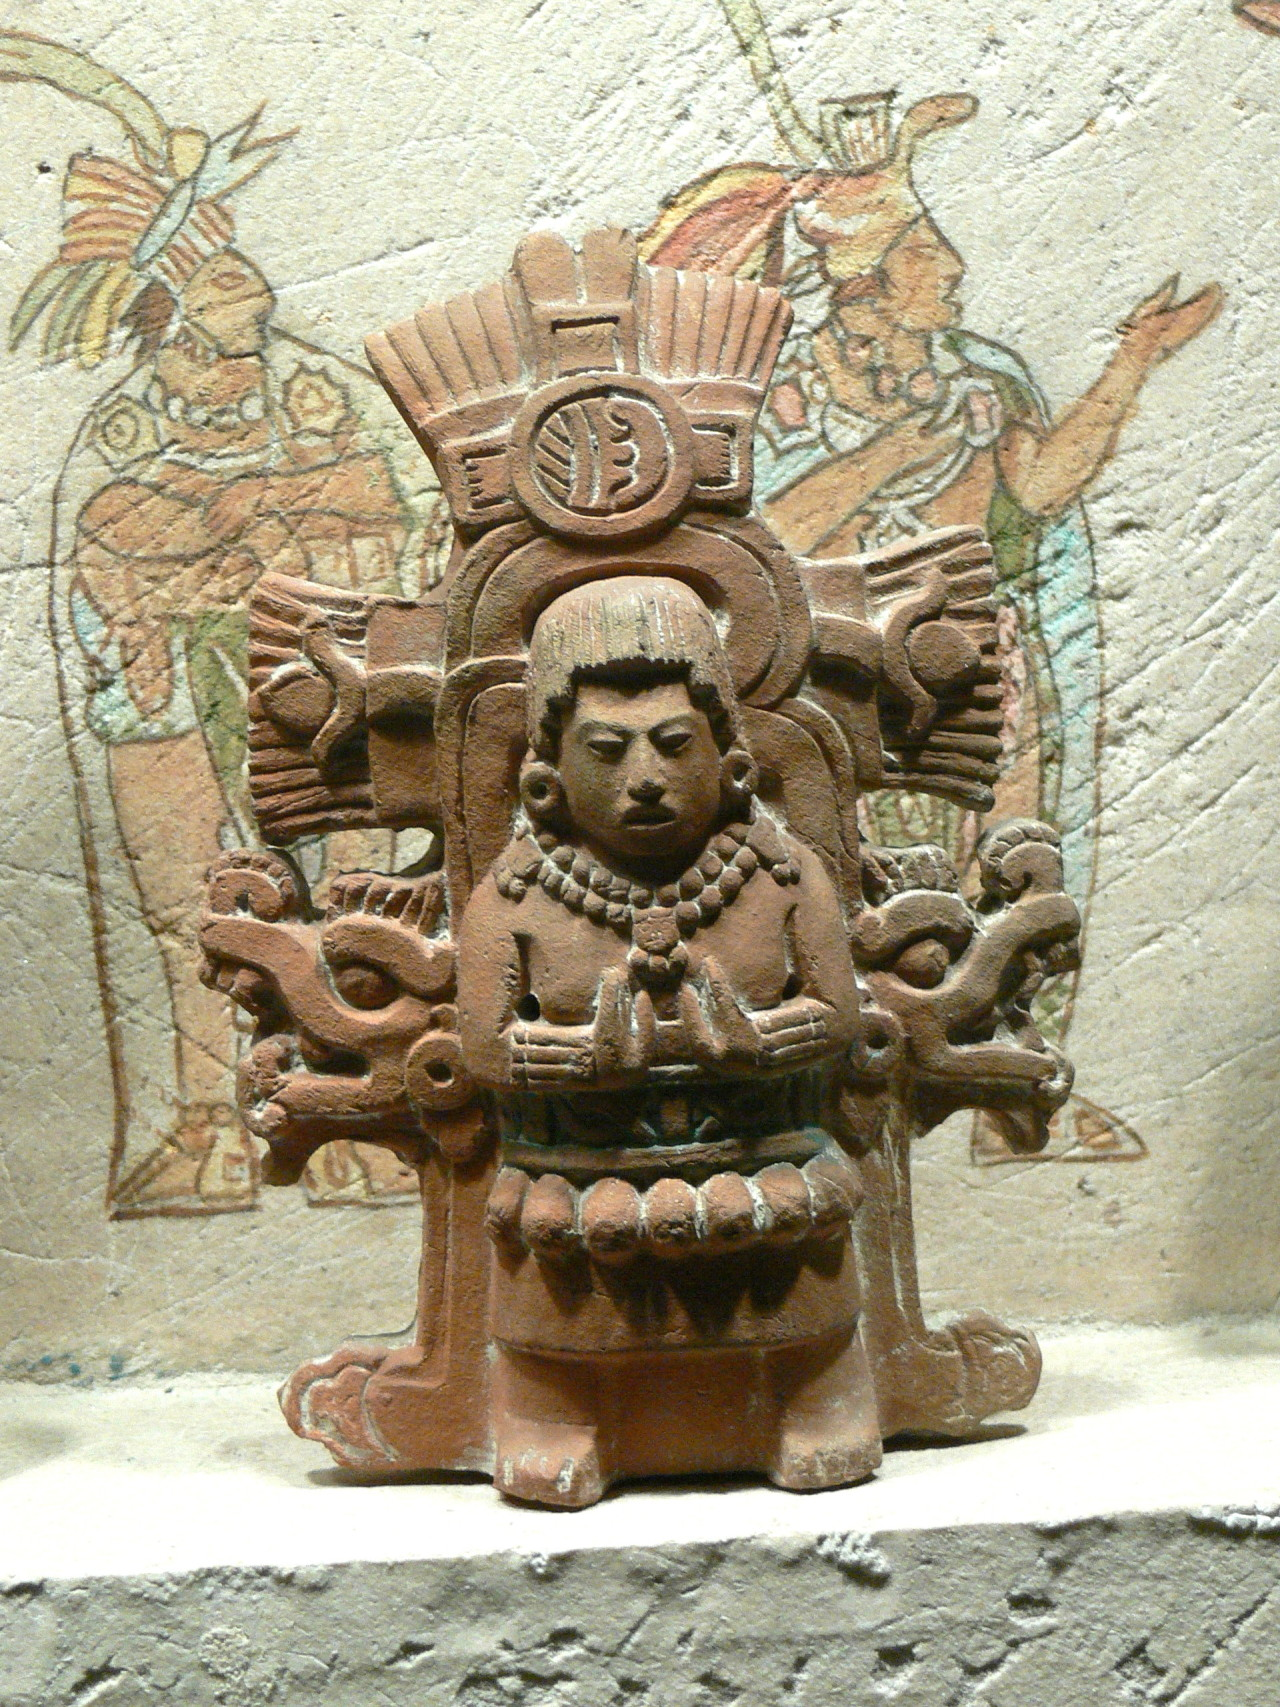 Figure of a Mayan priest. Courtesy & currently located at the National Museum of Anthropology in Mexico City. Photo taken by Wolfgang Sauber